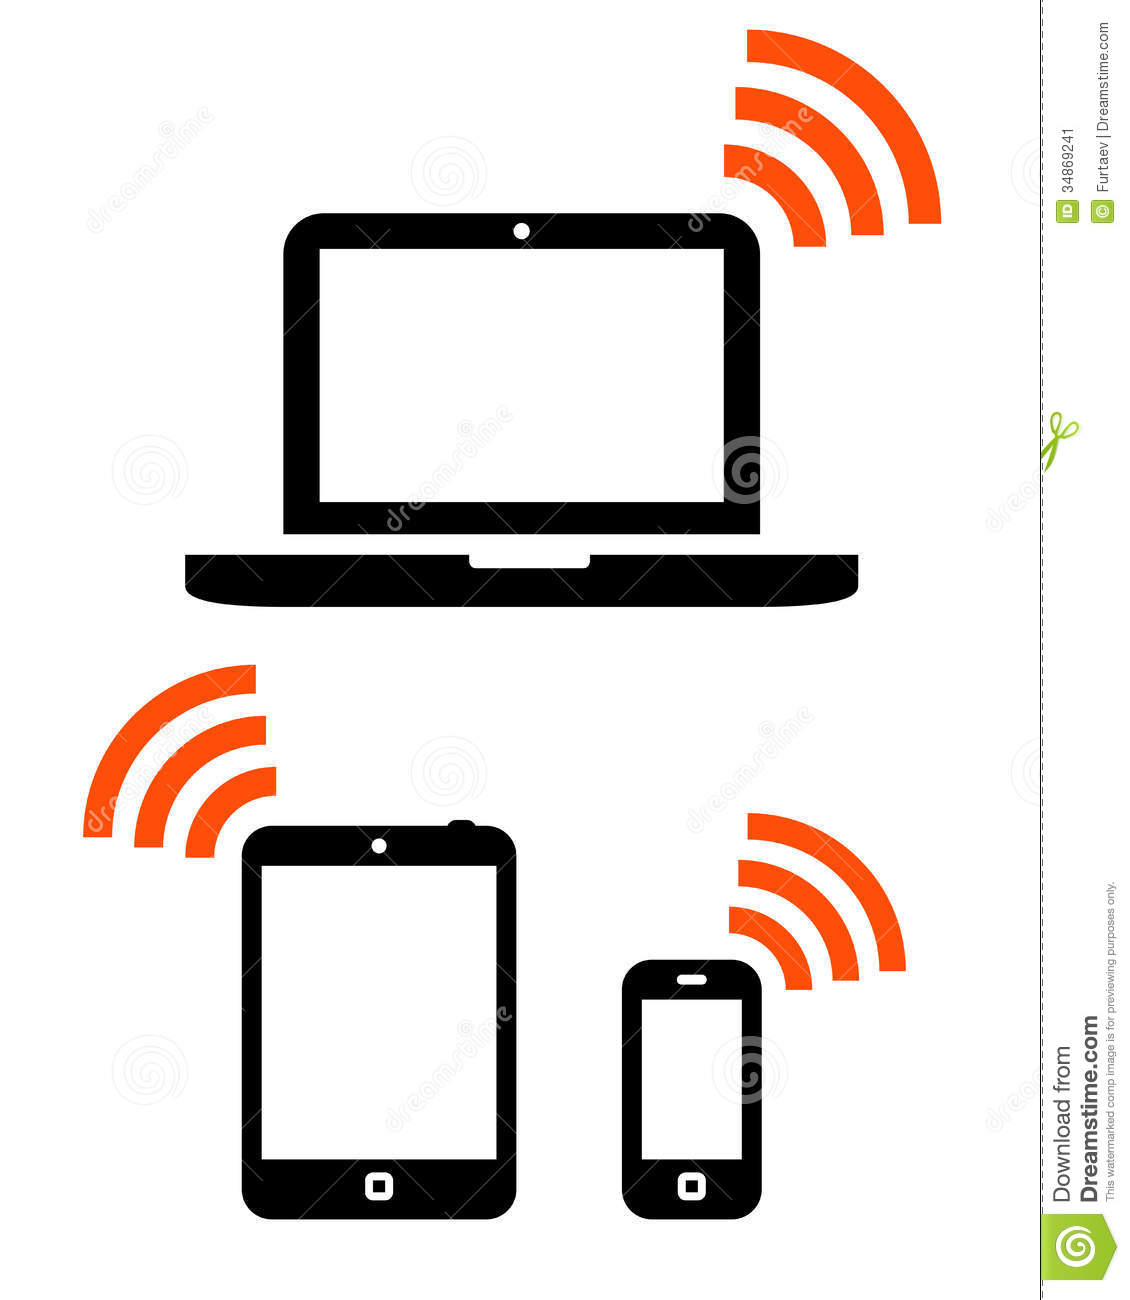 11 Mobile Phone Computer Icons Images